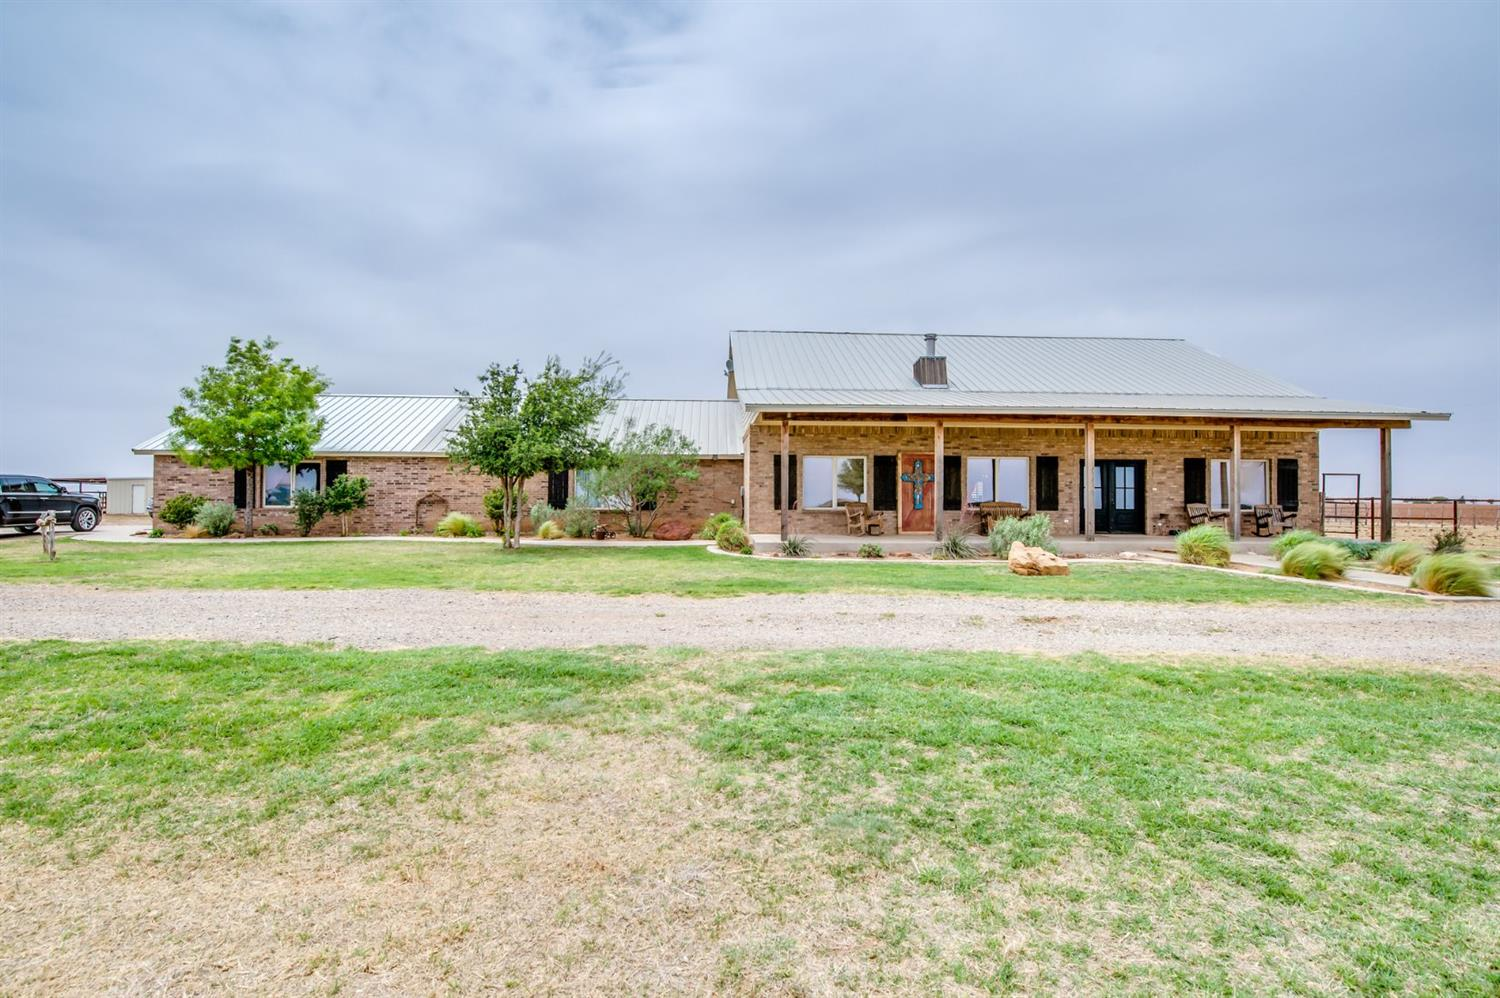 Awesome home on 5 acres in New Home School District!! 4 bedroom, 3 bath, 2 living areas. Awesome barn set up perfect for show animals and also has living quarters in it. All fenced and ready for a new owner!